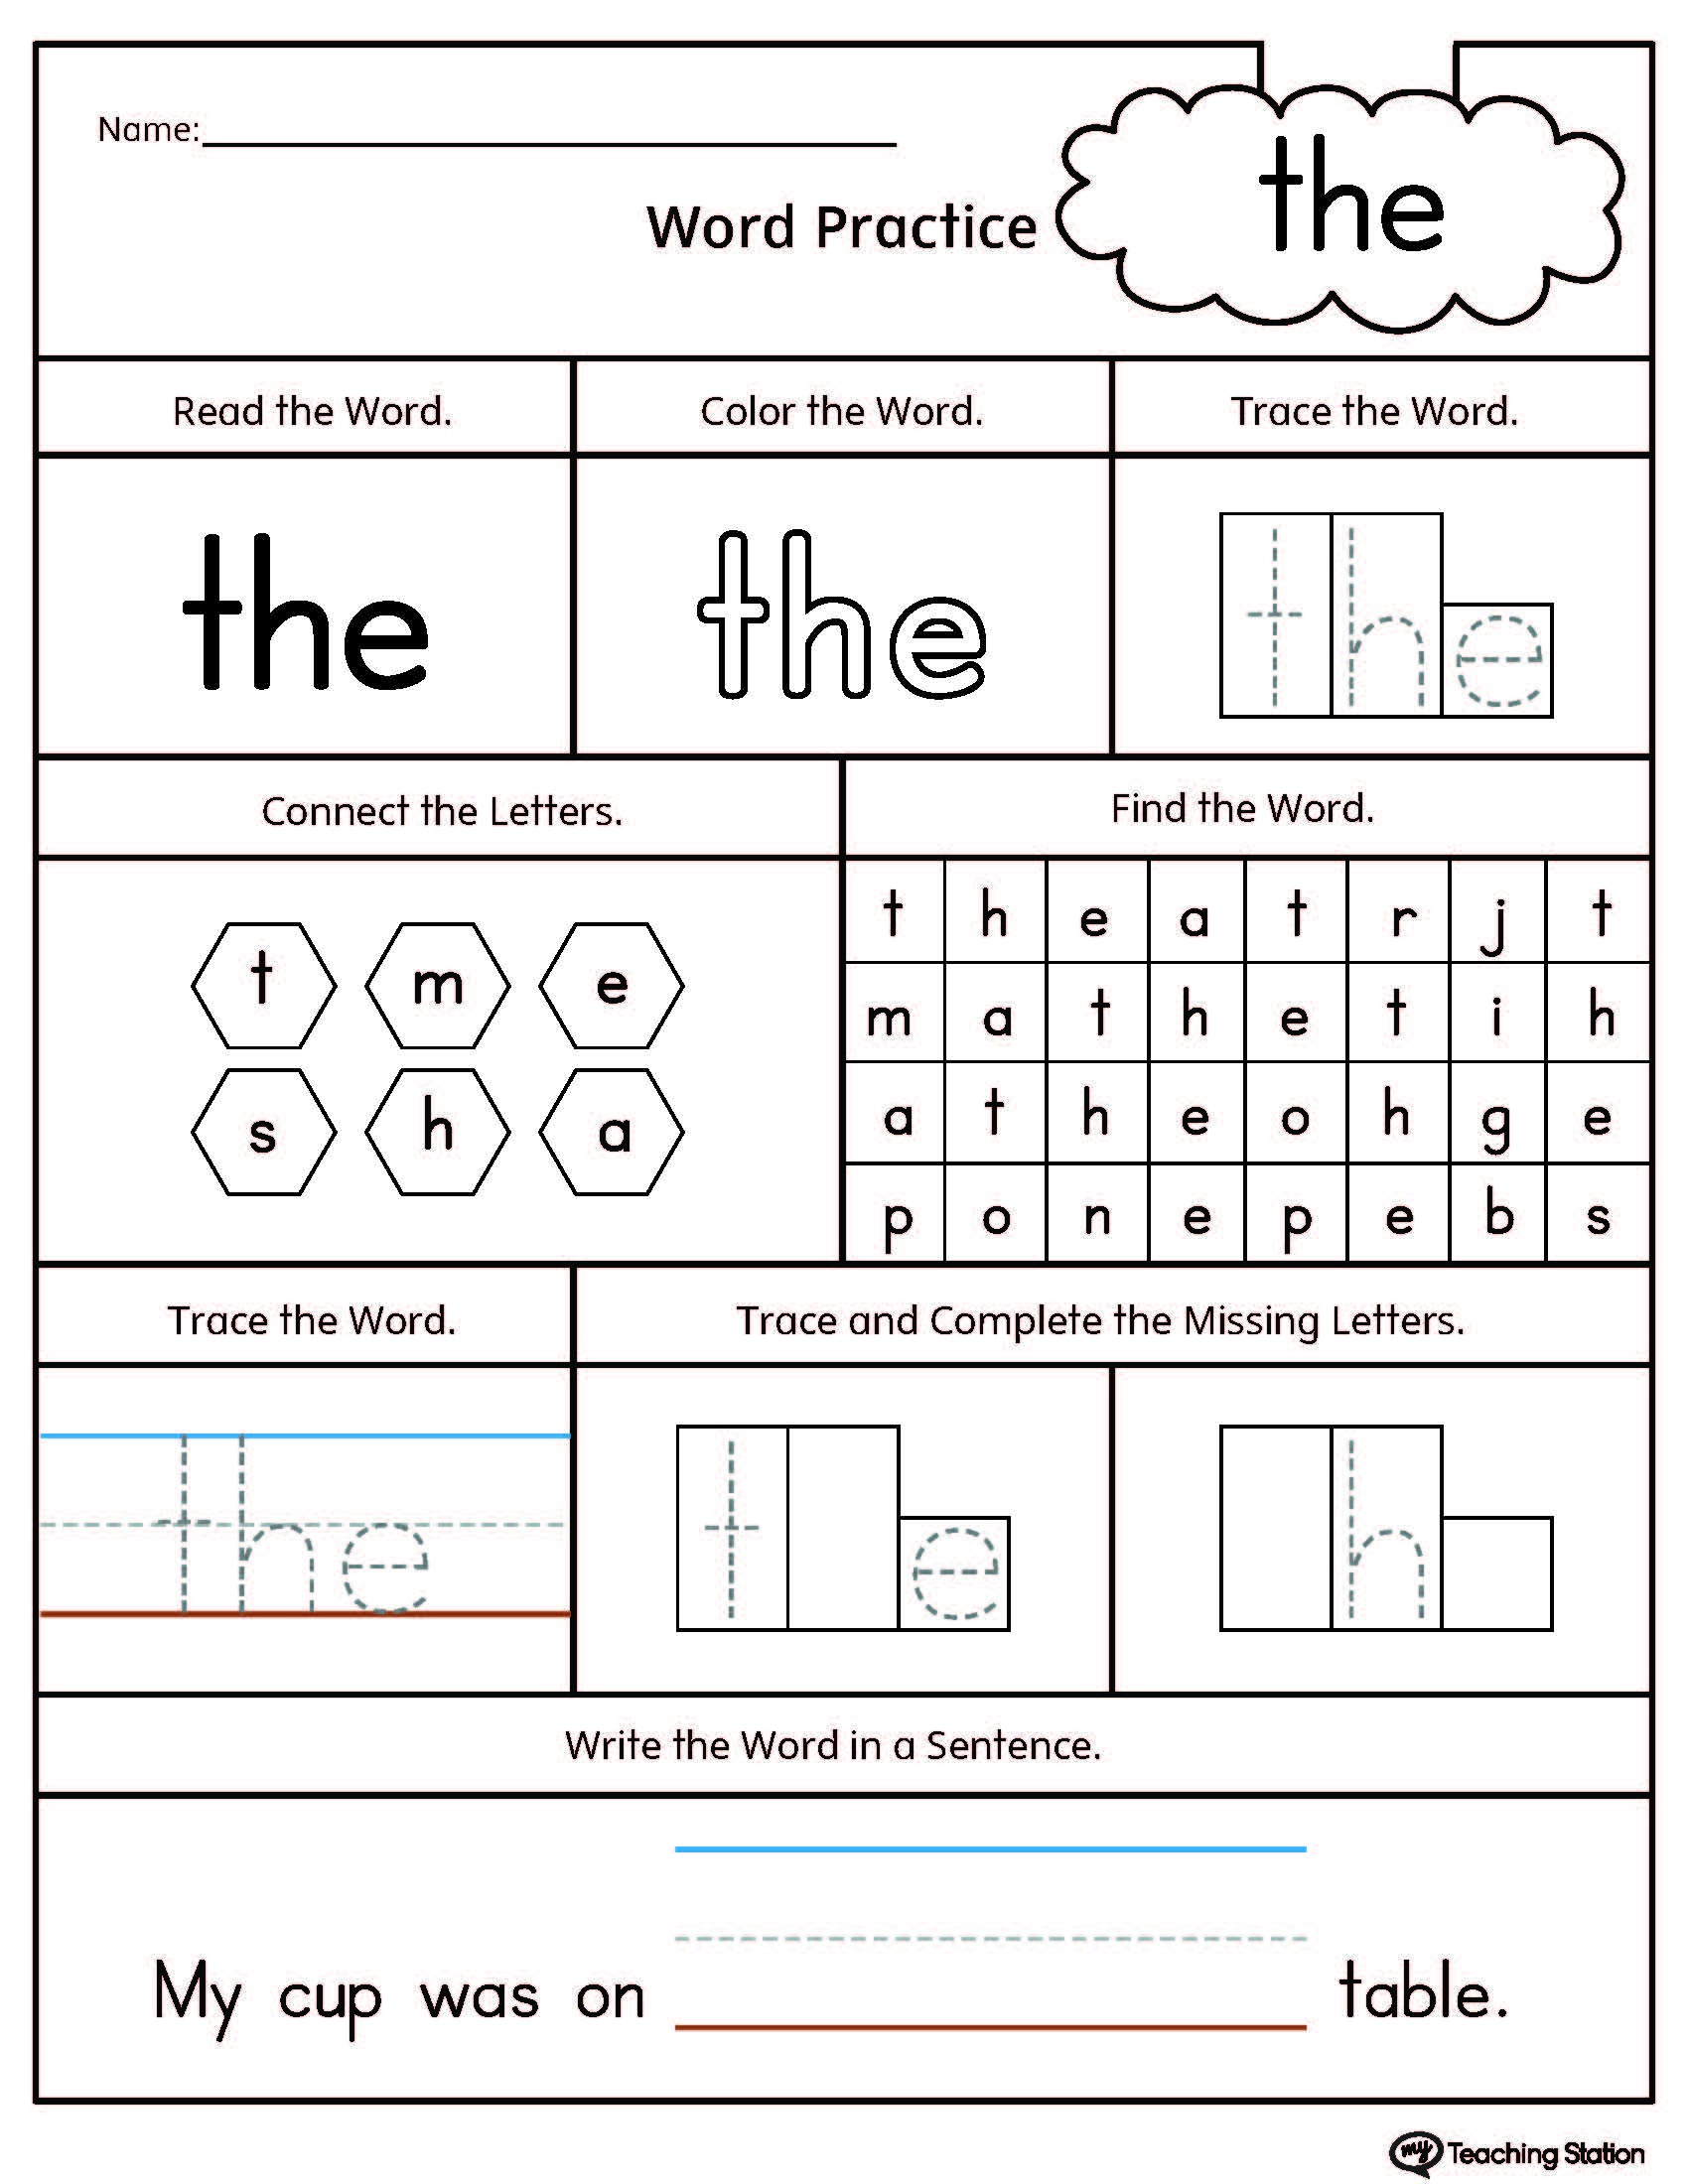 Sight Word The Printable Worksheet   Myteachingstation - Free Printable Sight Word Reading Passages